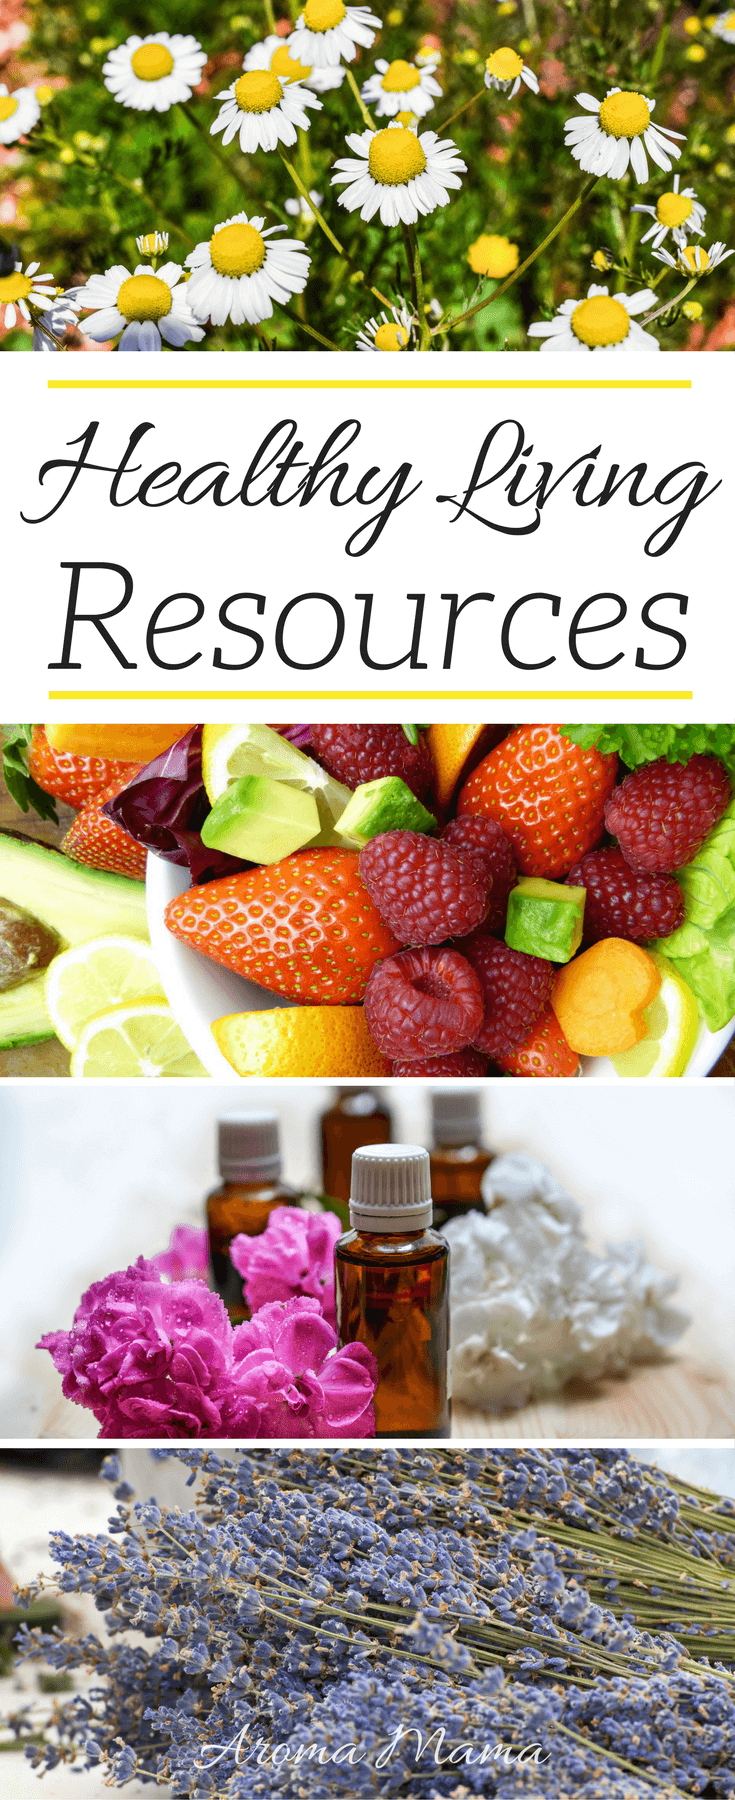 Healthy Living Resources is full of resources for anyone that has goals of living a healthier lifestyle. It includes organic and non-GMO food, skin care, essential oils, babies, kids, educational, and health resources.